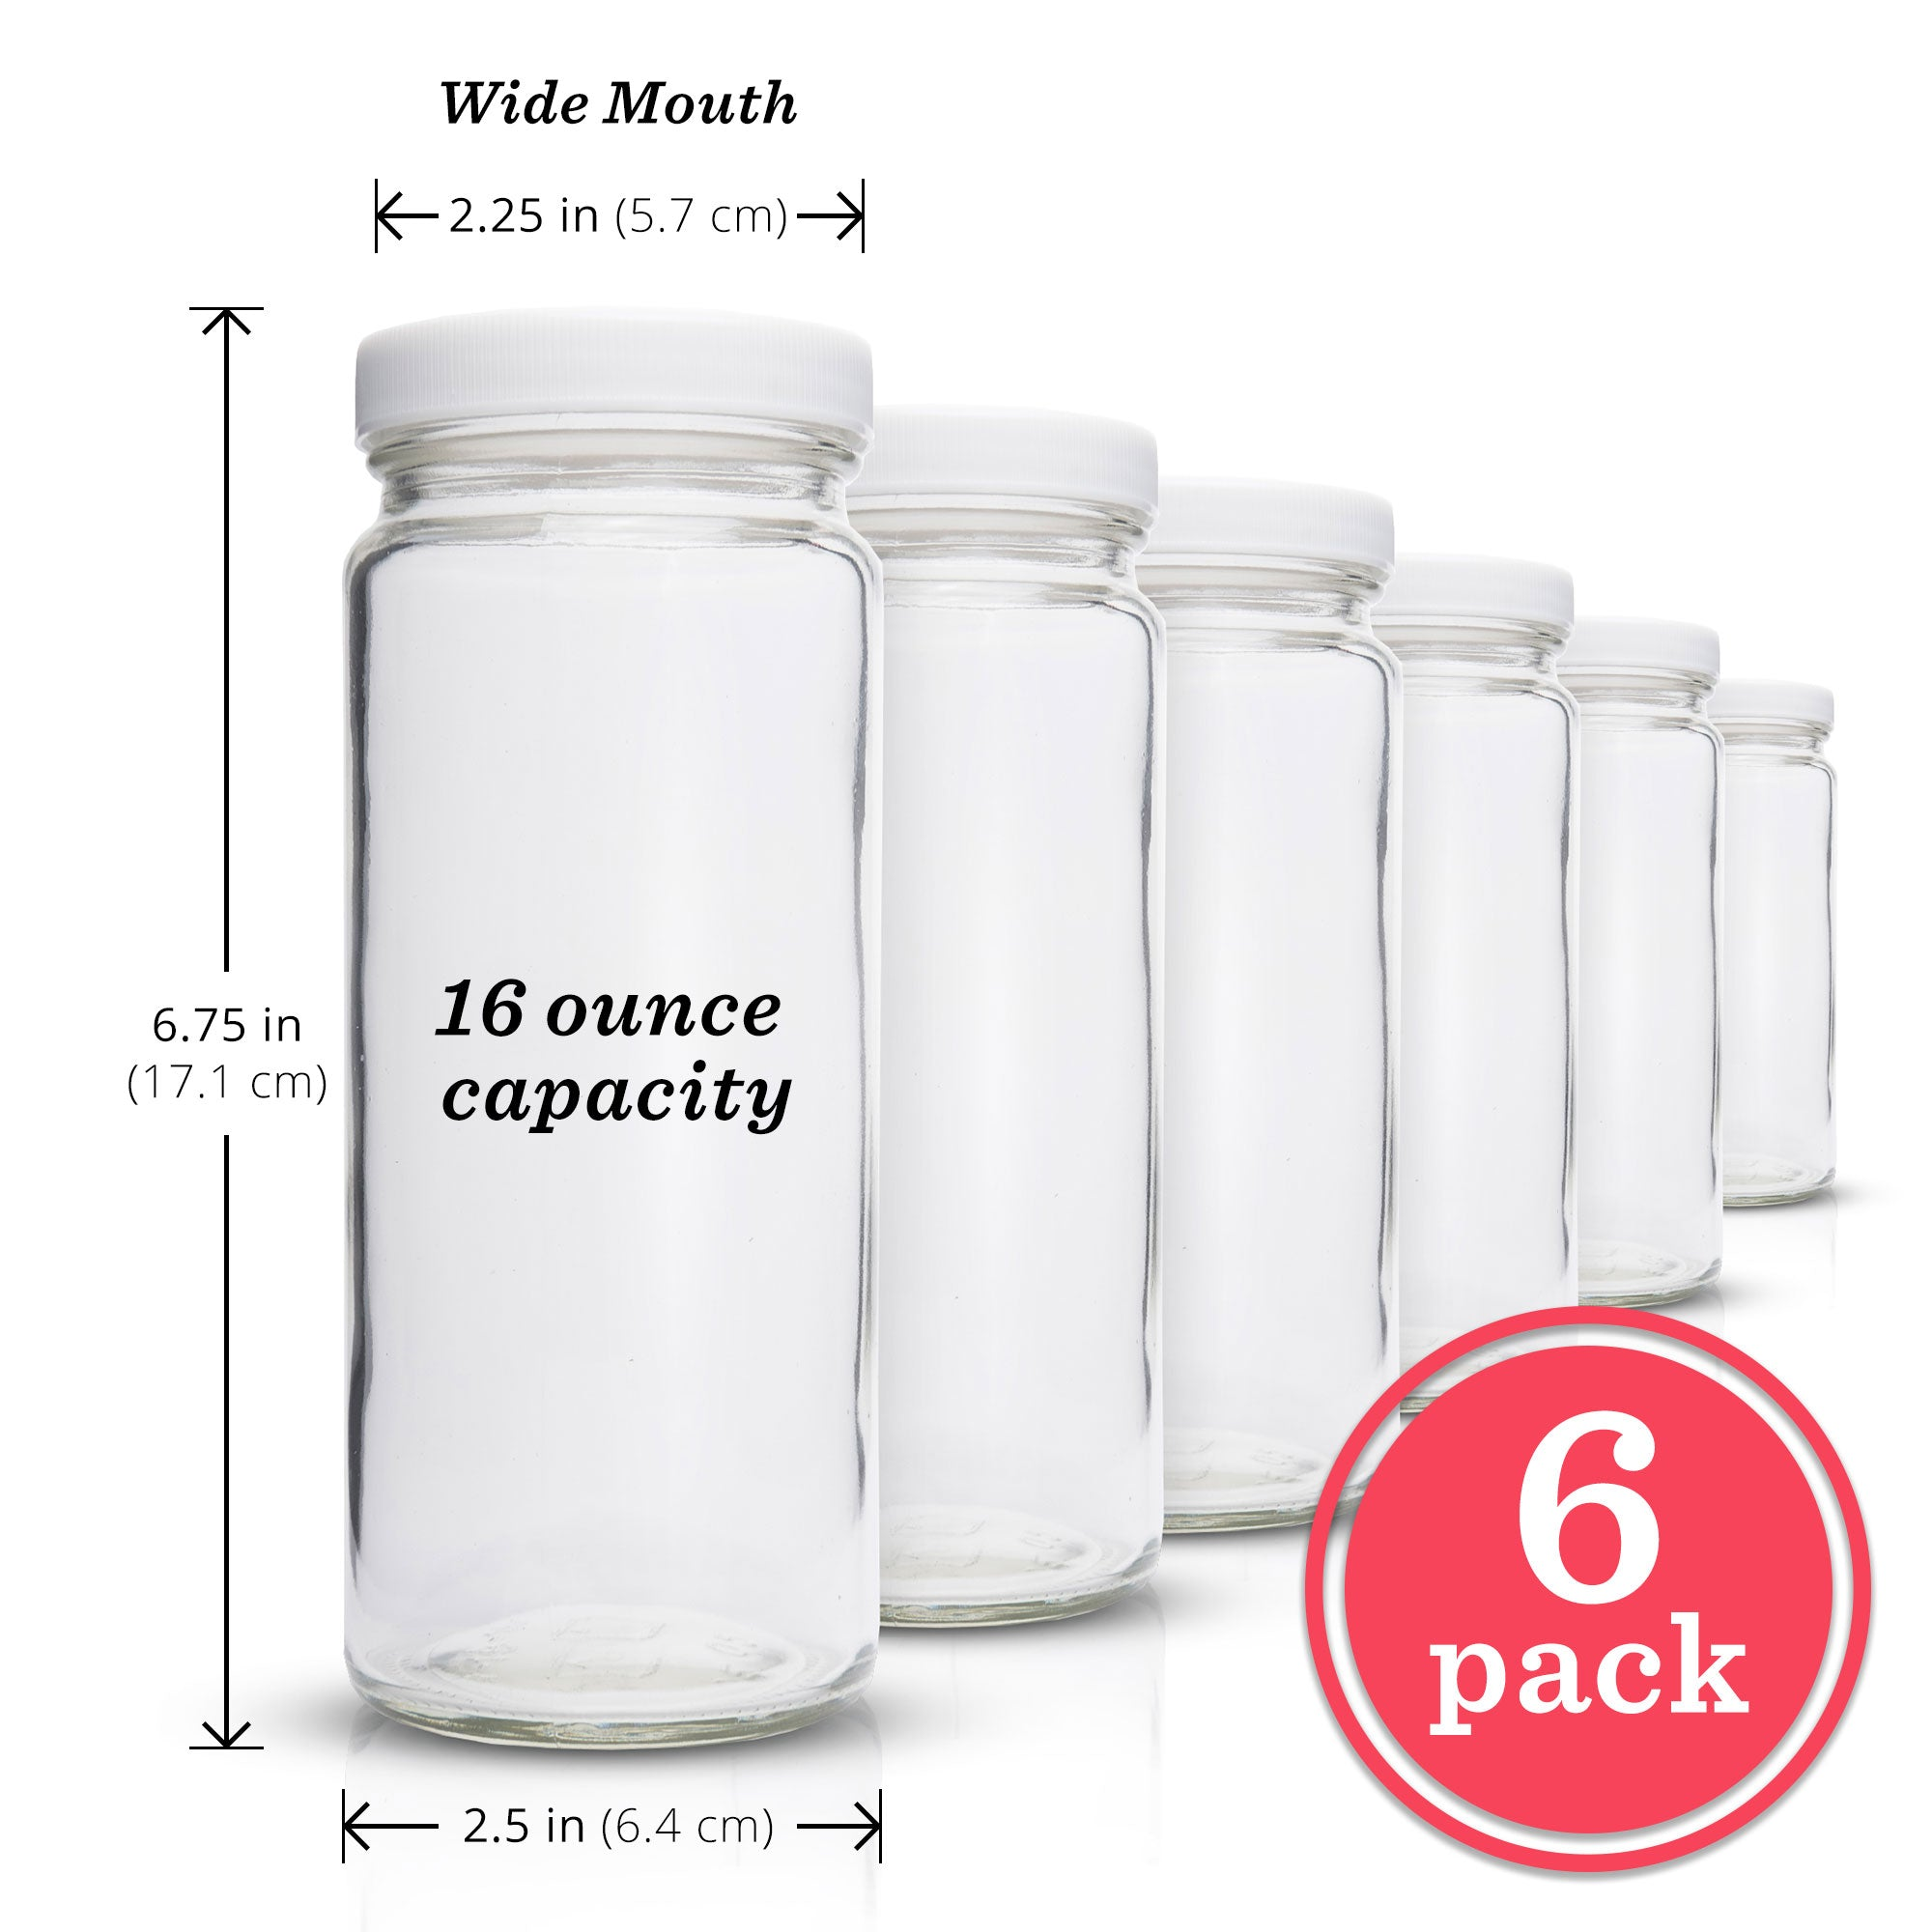 Original Series Wide Mouth Glass Bottles (White Lids)